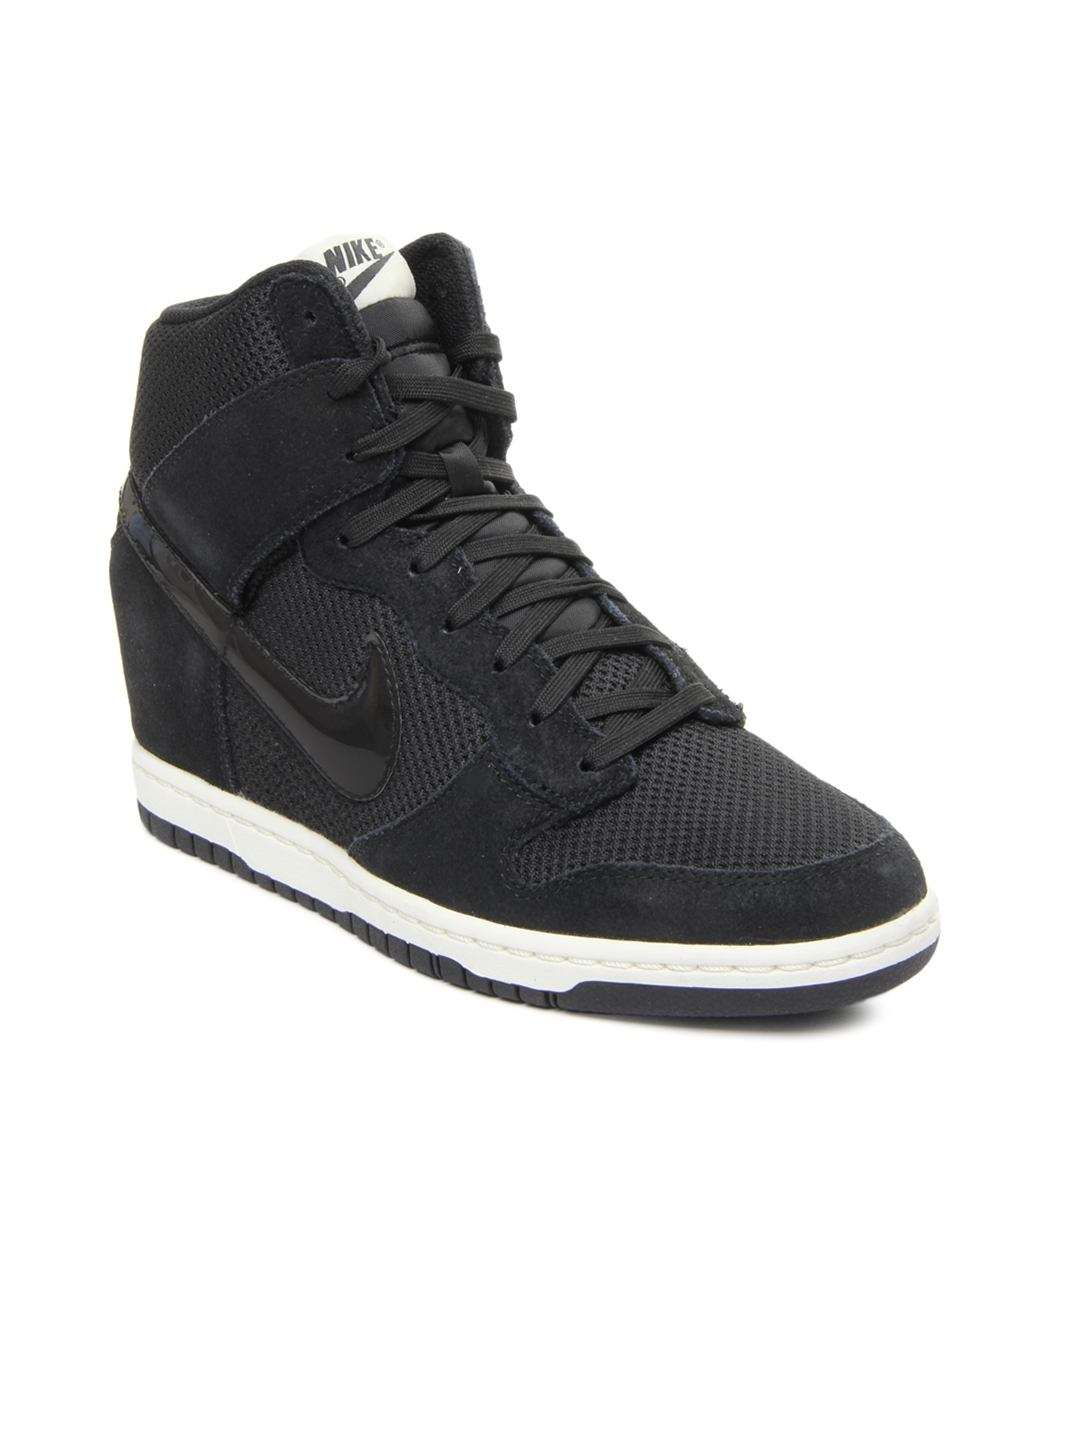 info for 3aee4 910e1 Rs. 7995 Nike Women Black Dunk Sky Hi Essential Casual Shoes 3  0bfd1545807f47cbbc2402930c7e97d6 mini Rs. 7995 nike dunk sky hi myntra ...